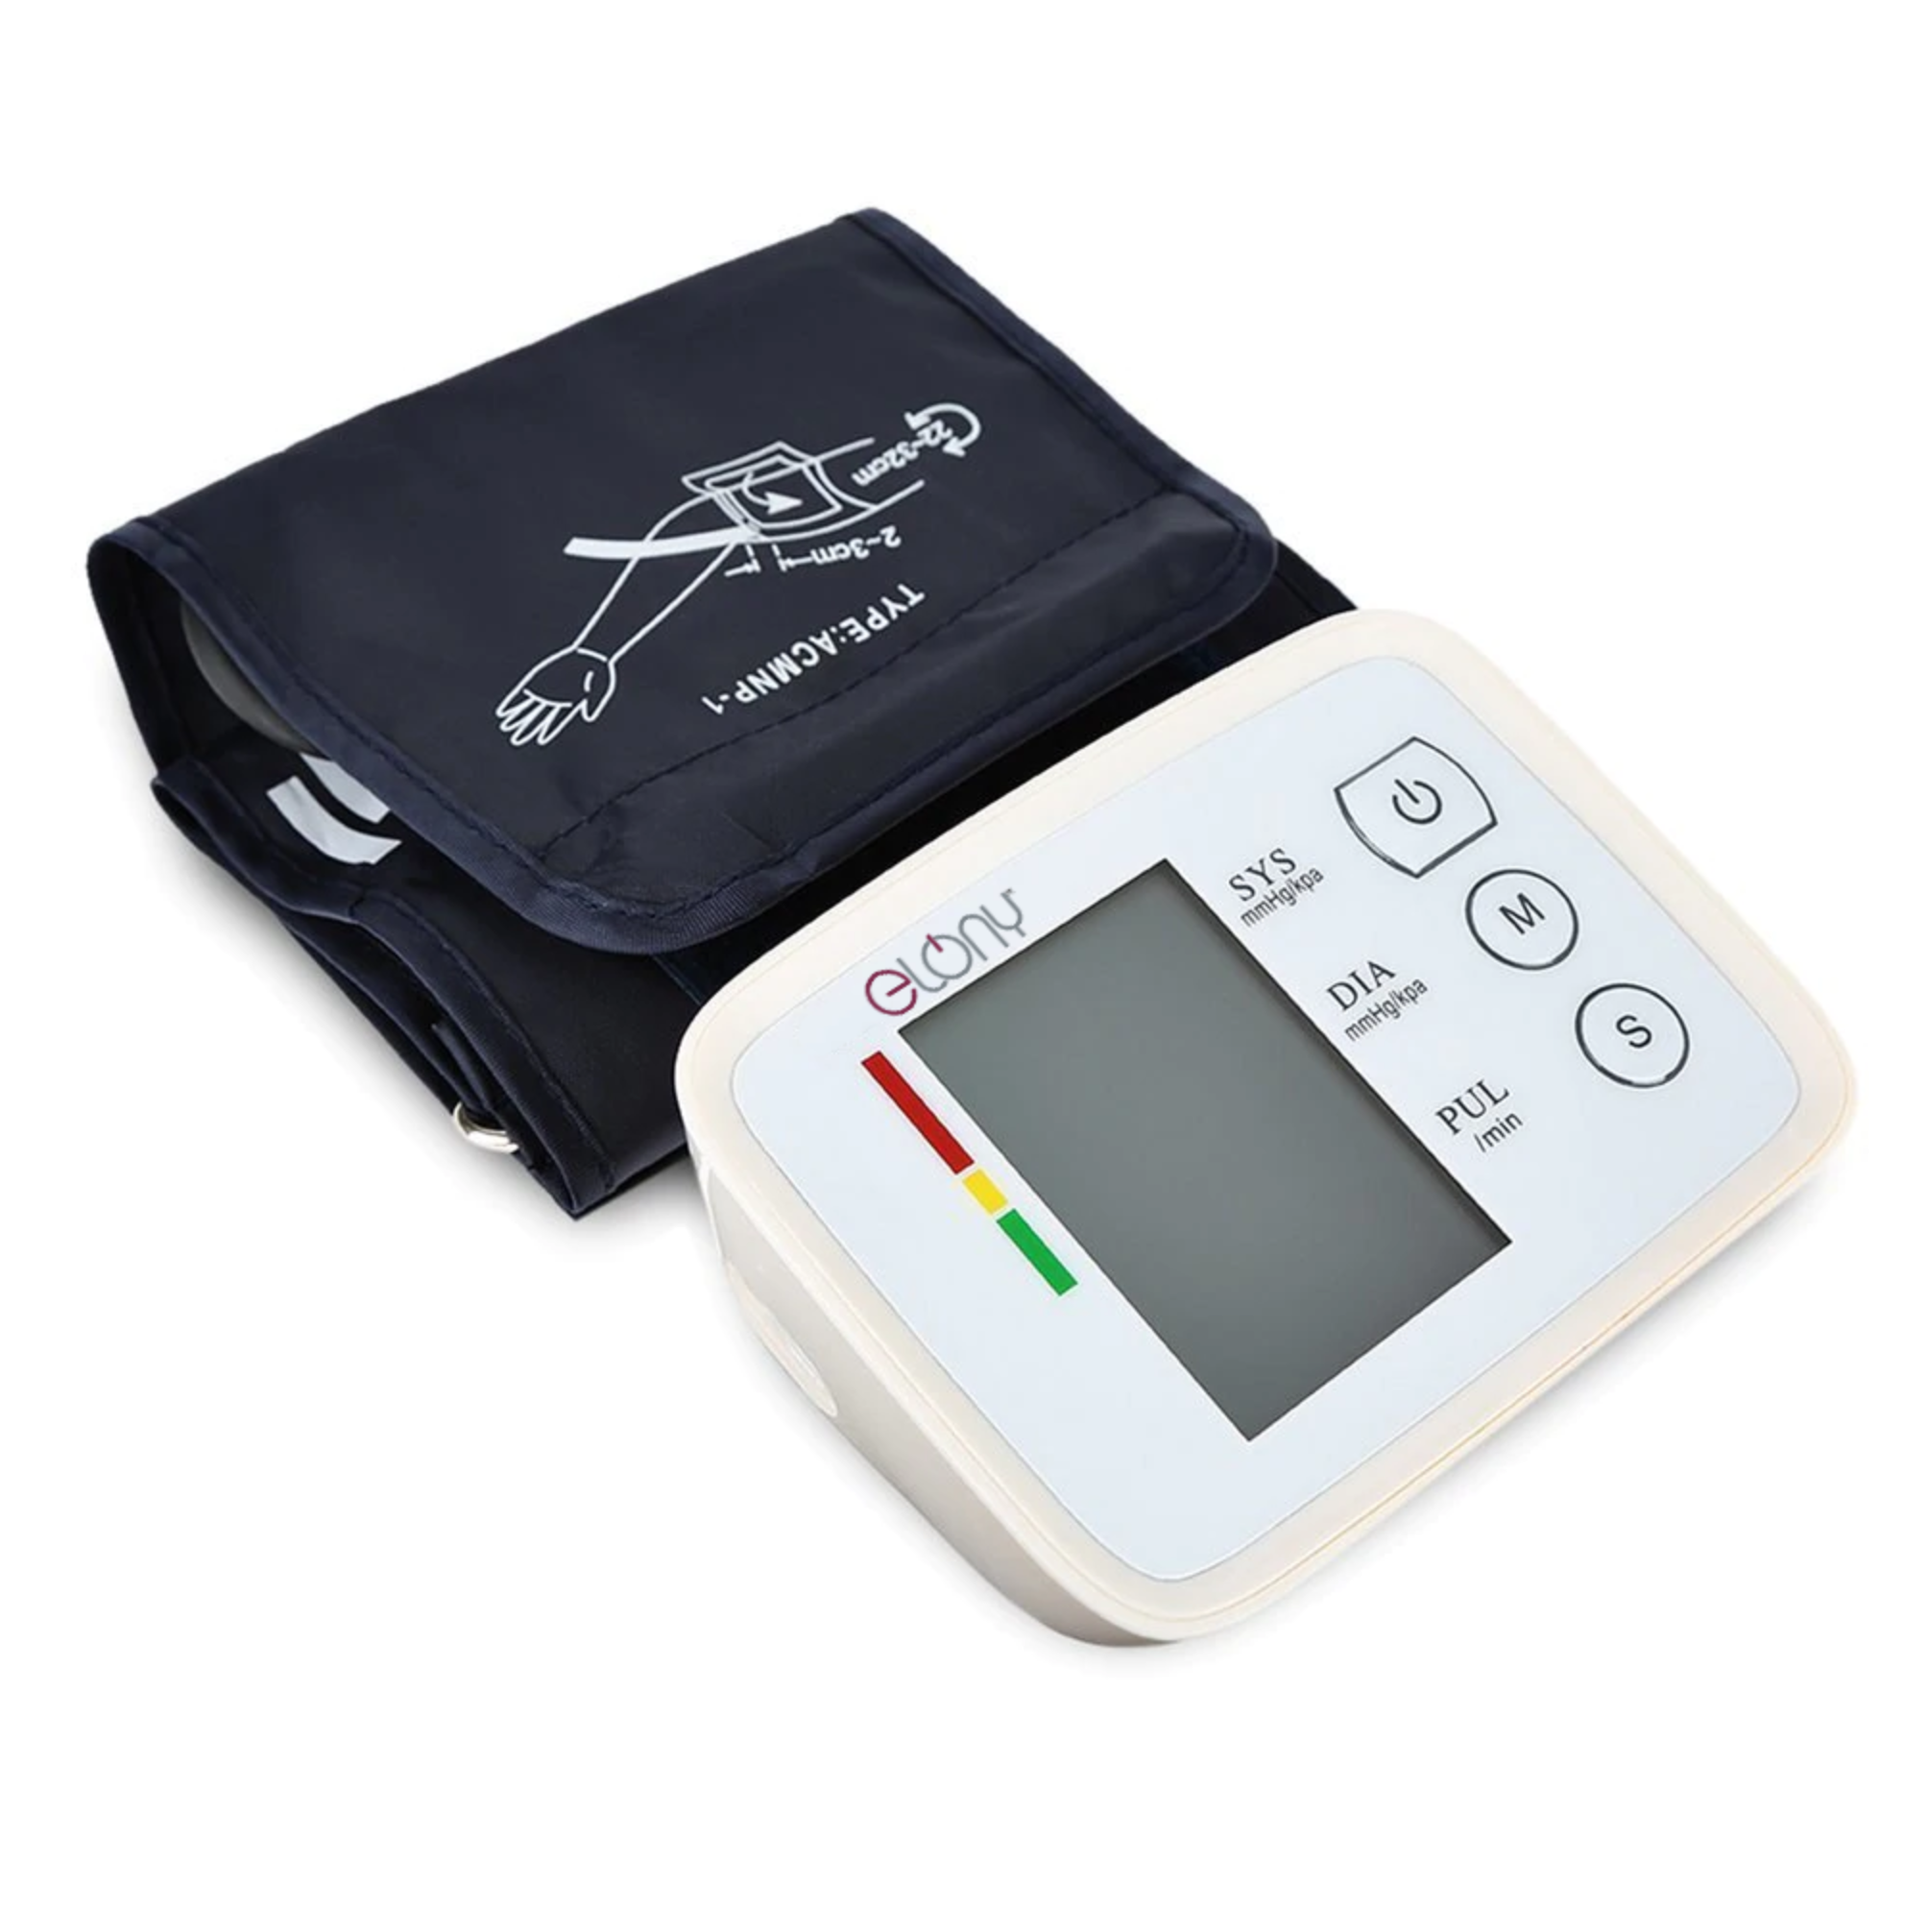 Elony ELY106 Intelligent Arm Type Blood Pressure Meter